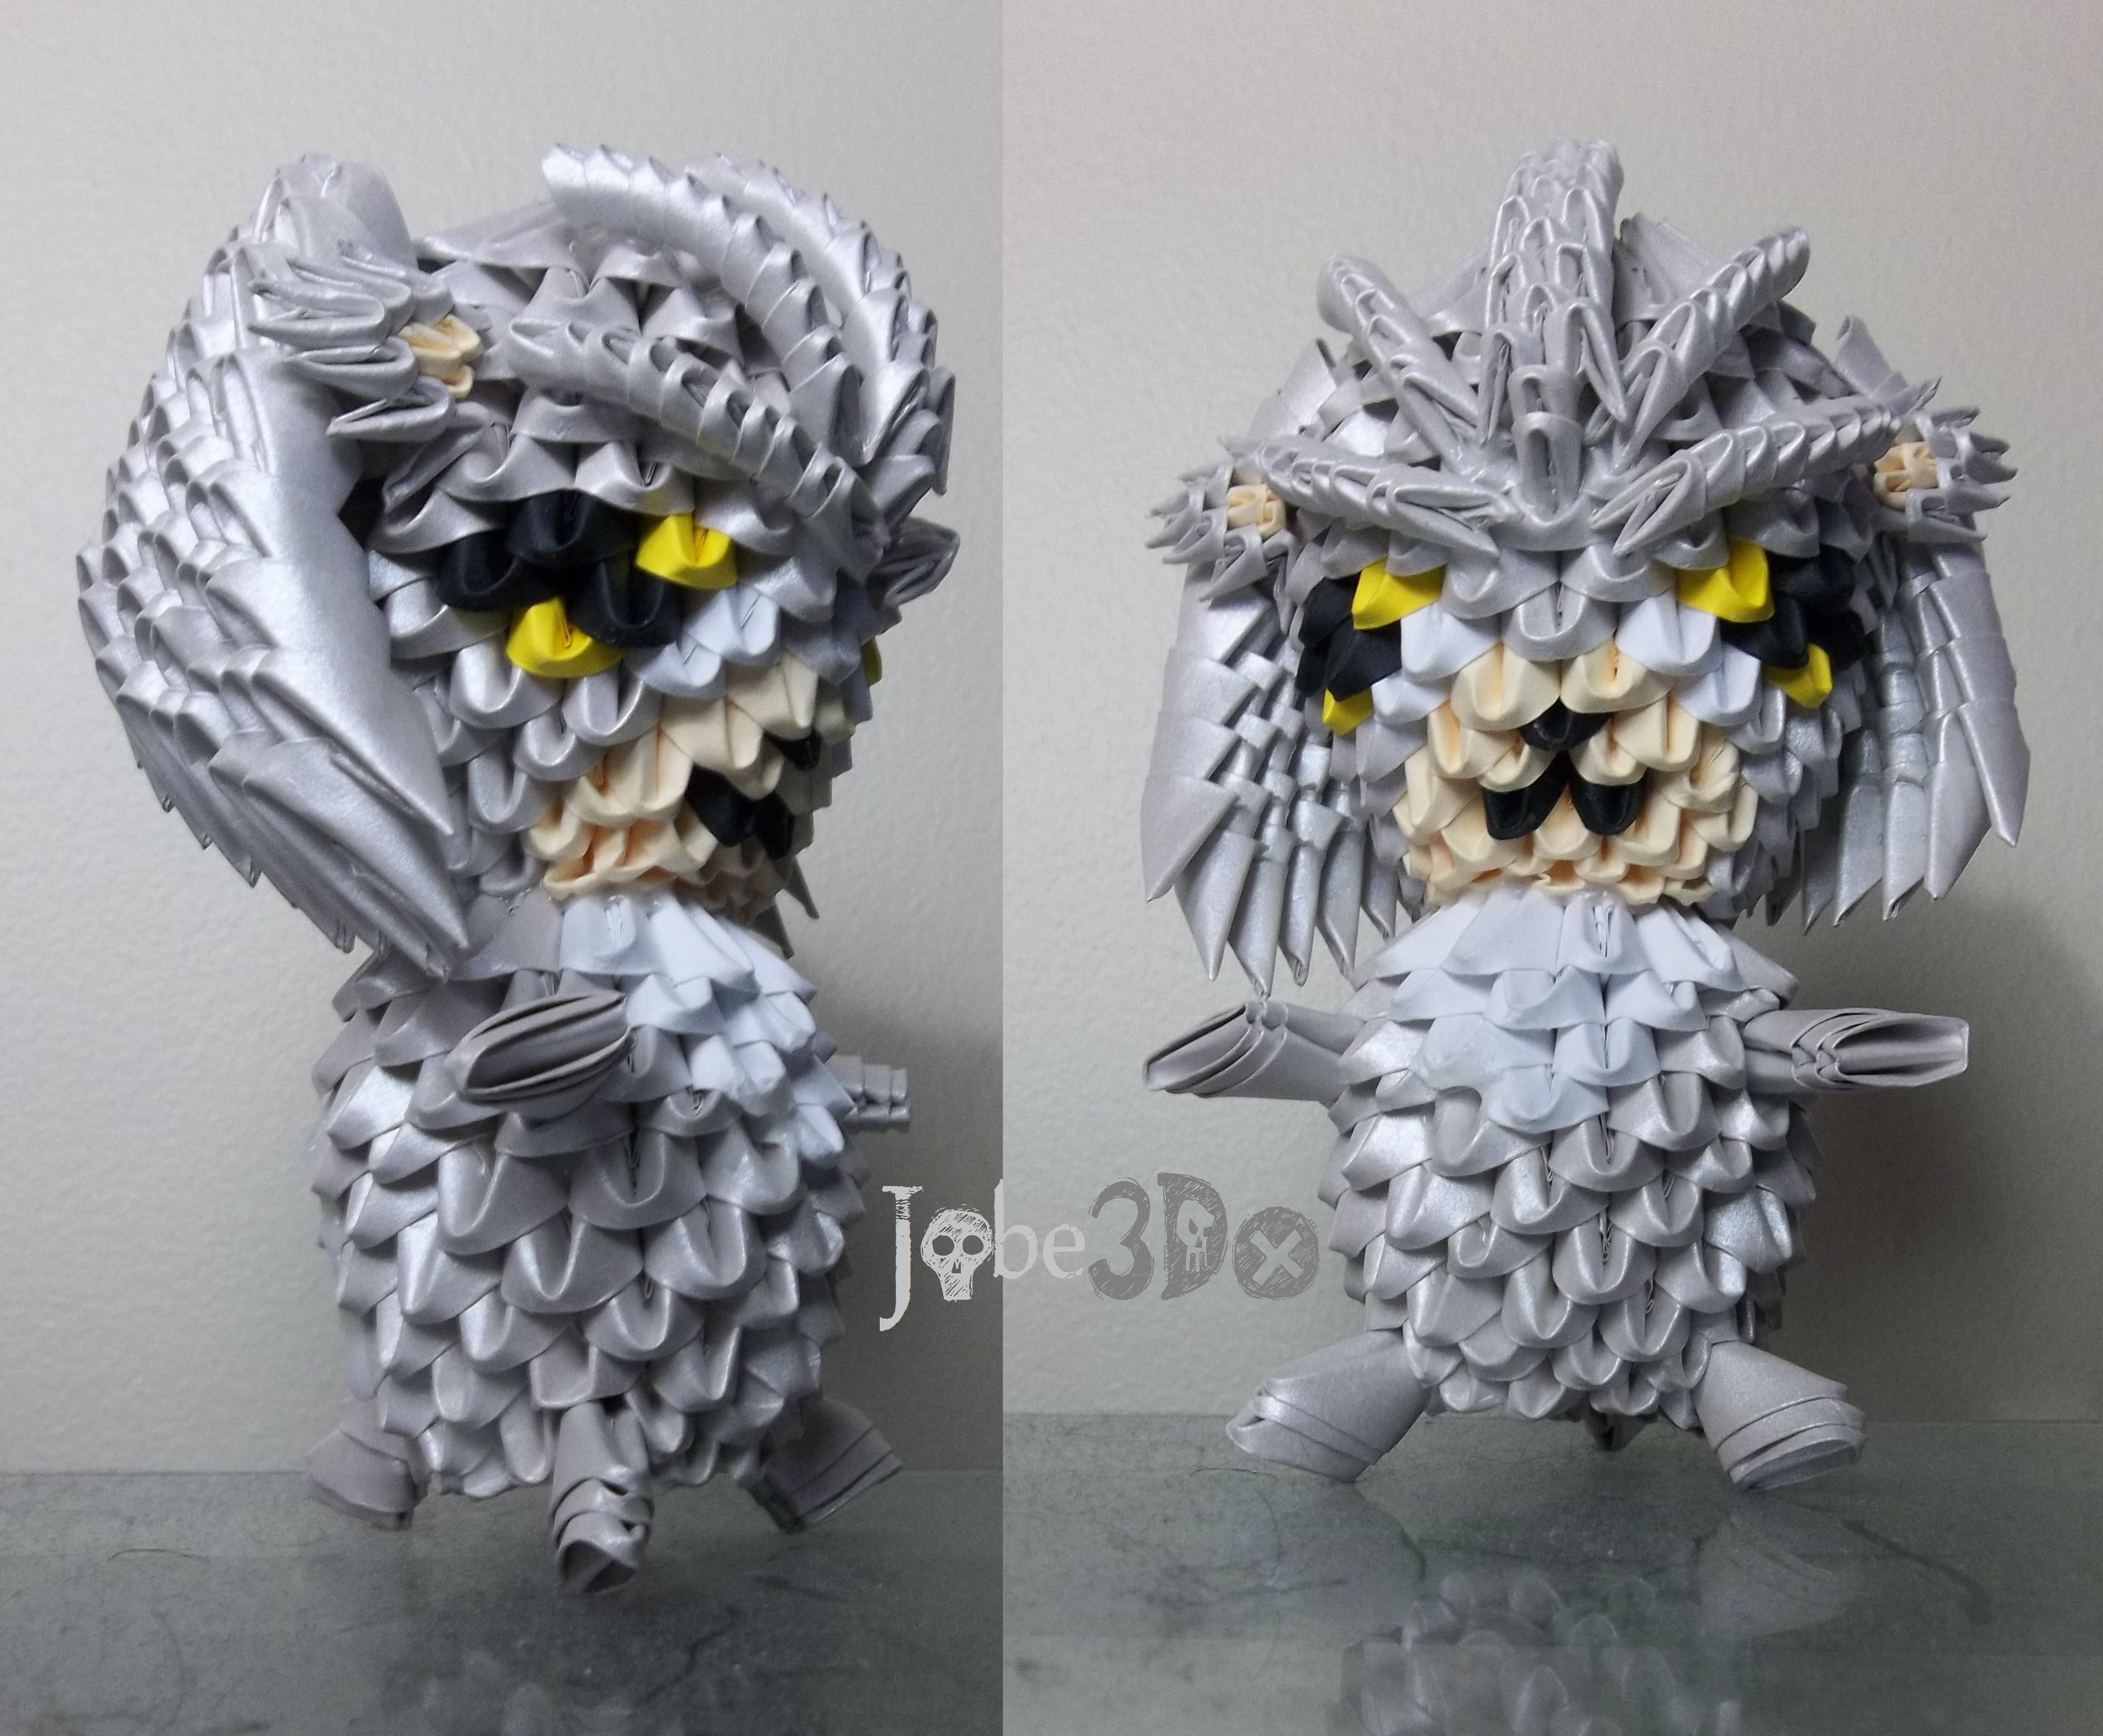 3D Origami - Chibi Silver the Hedgehog by Jobe3DO